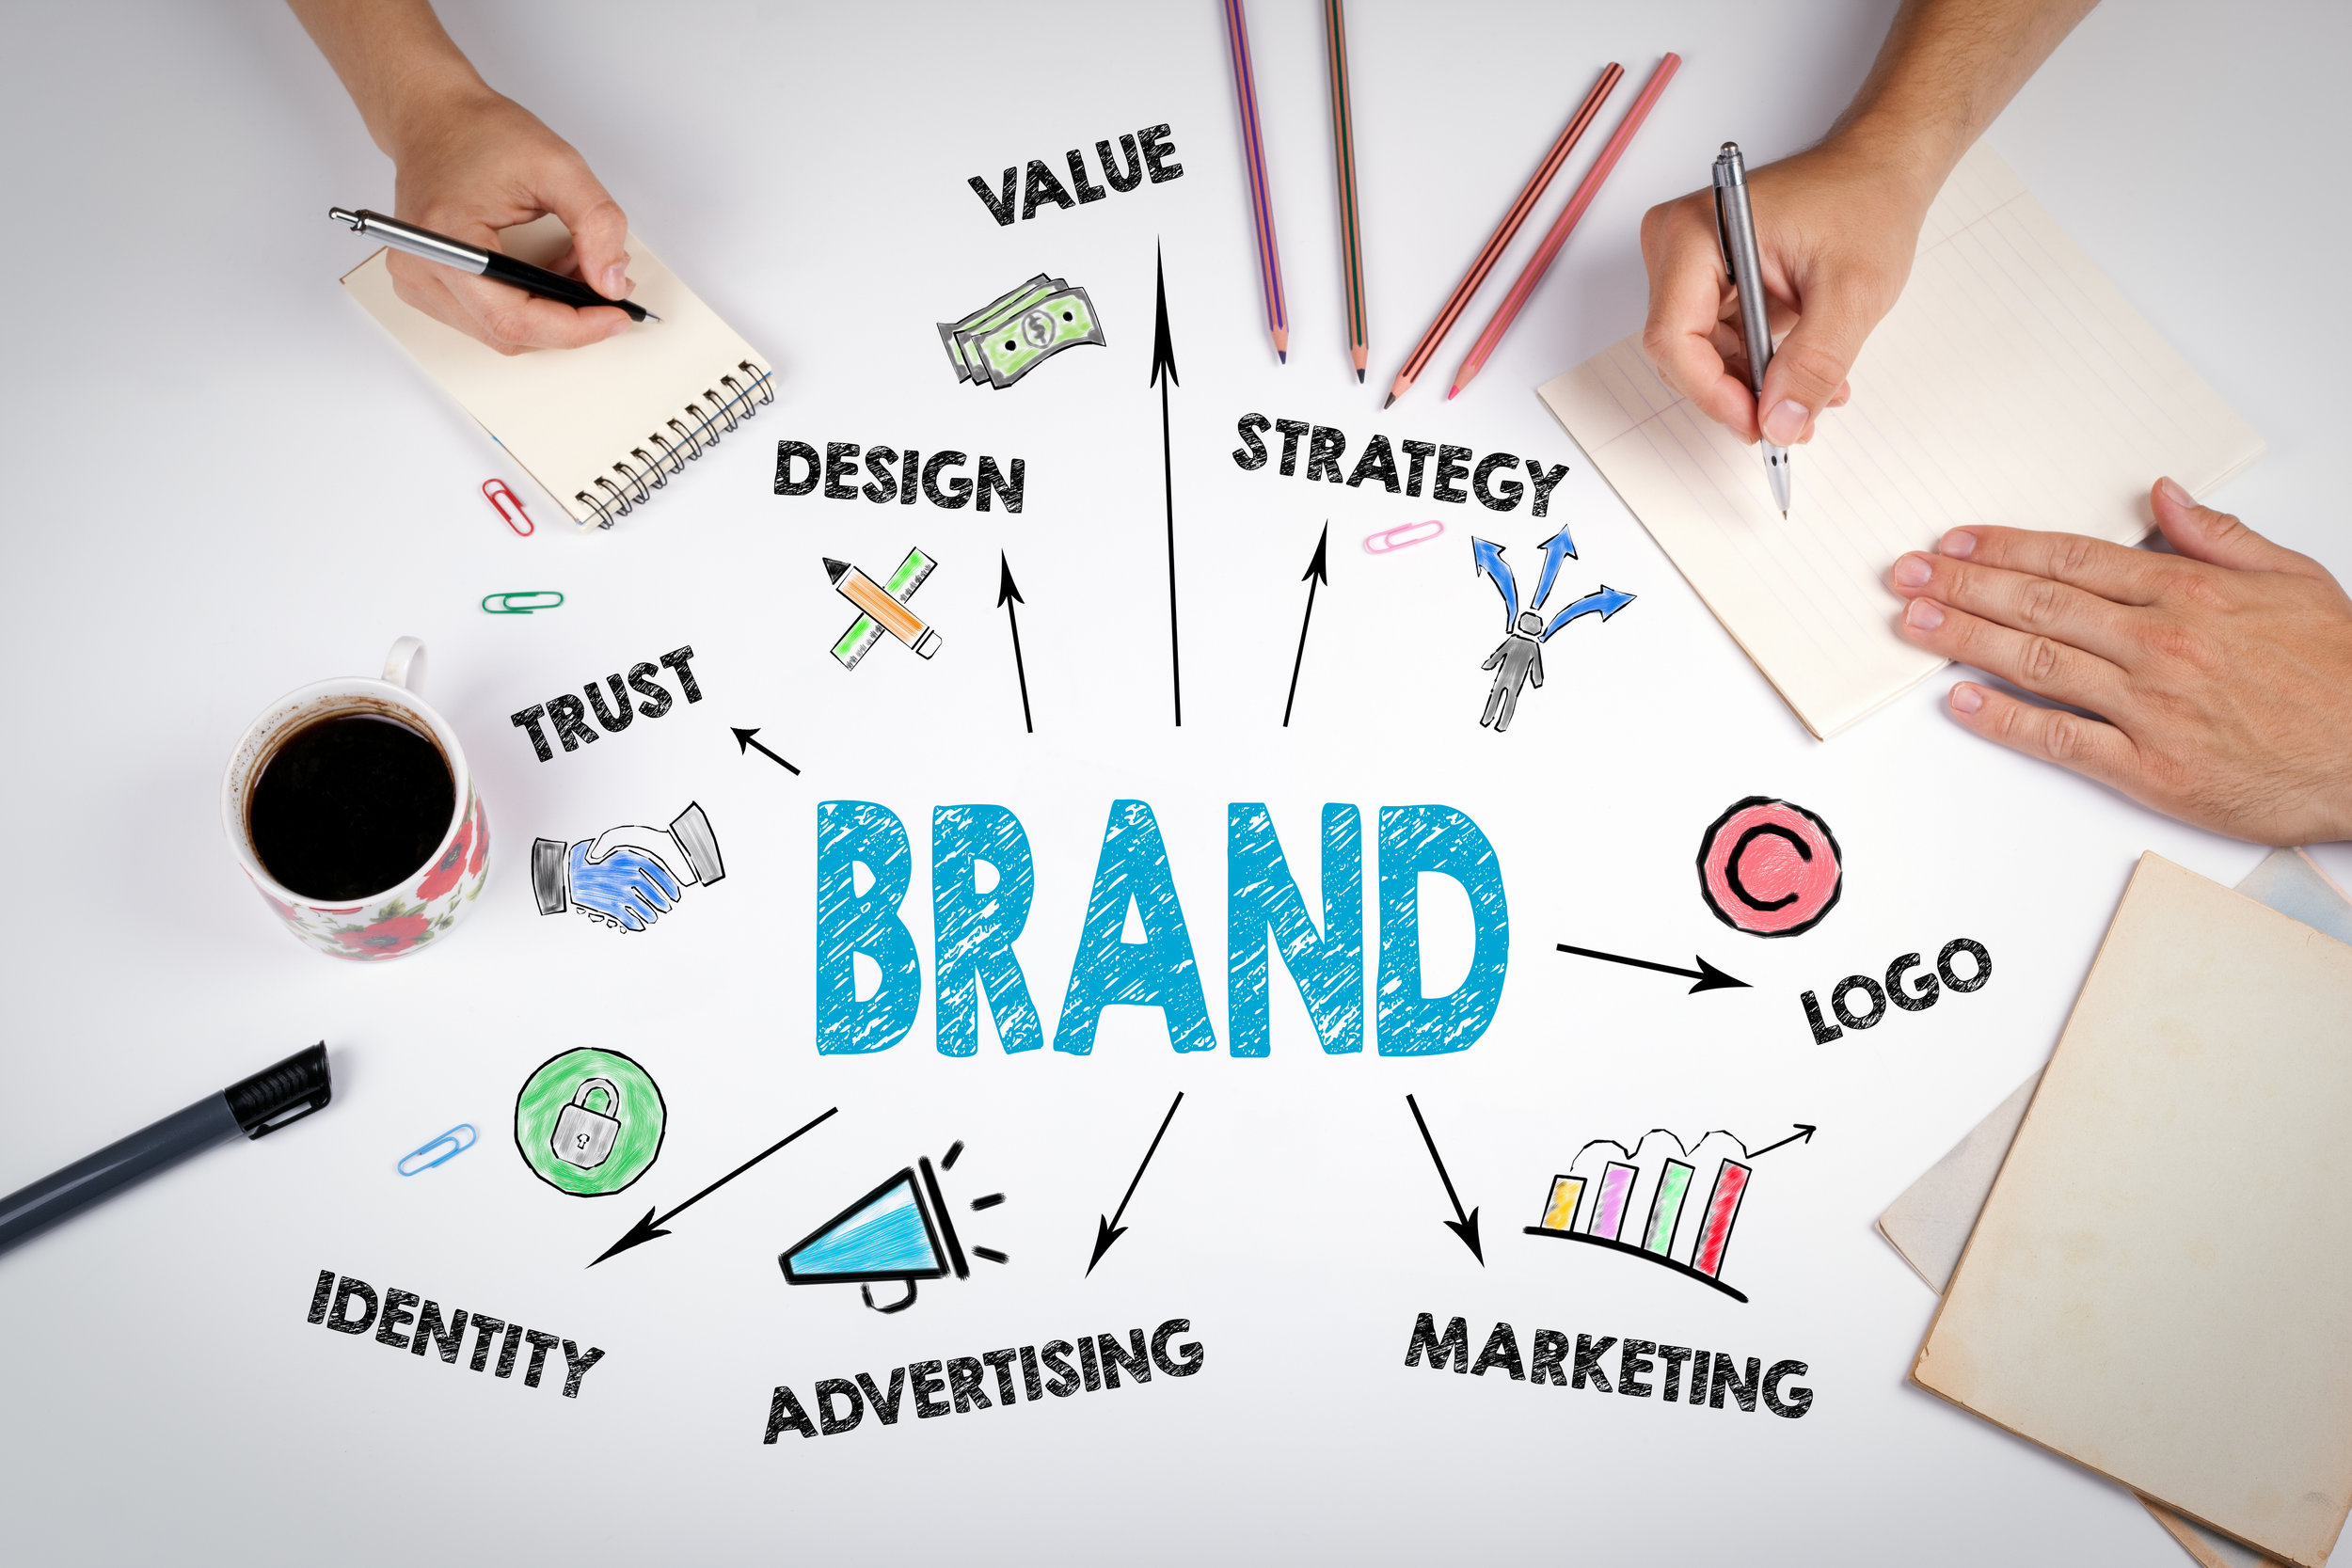 Brand Management - Consumers love and trust brands. A good brand identity enables you to stand out in the marketplace and positions you for a long term relationship with your clients. Let us help you craft an identity and message that supports this relationship.